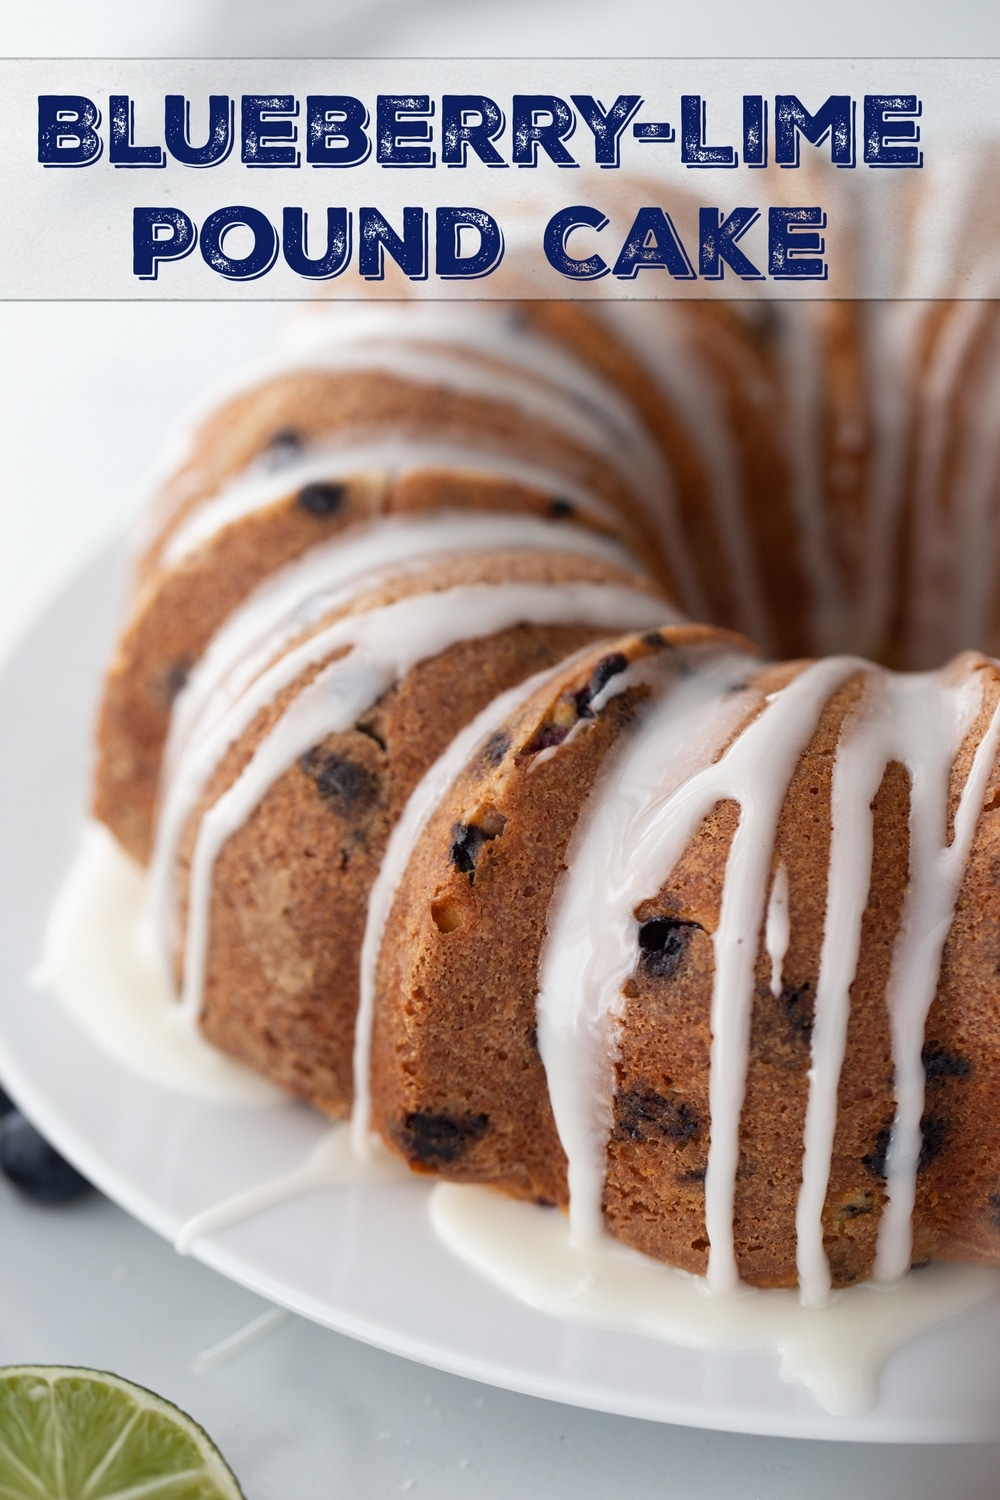 Blueberry pound cake drizzled with a tangy lime glaze - a zippy-sweet dessert, with an exceptionally tender and rich cake. An absolute flavor powerhouse! via @cmpollak1